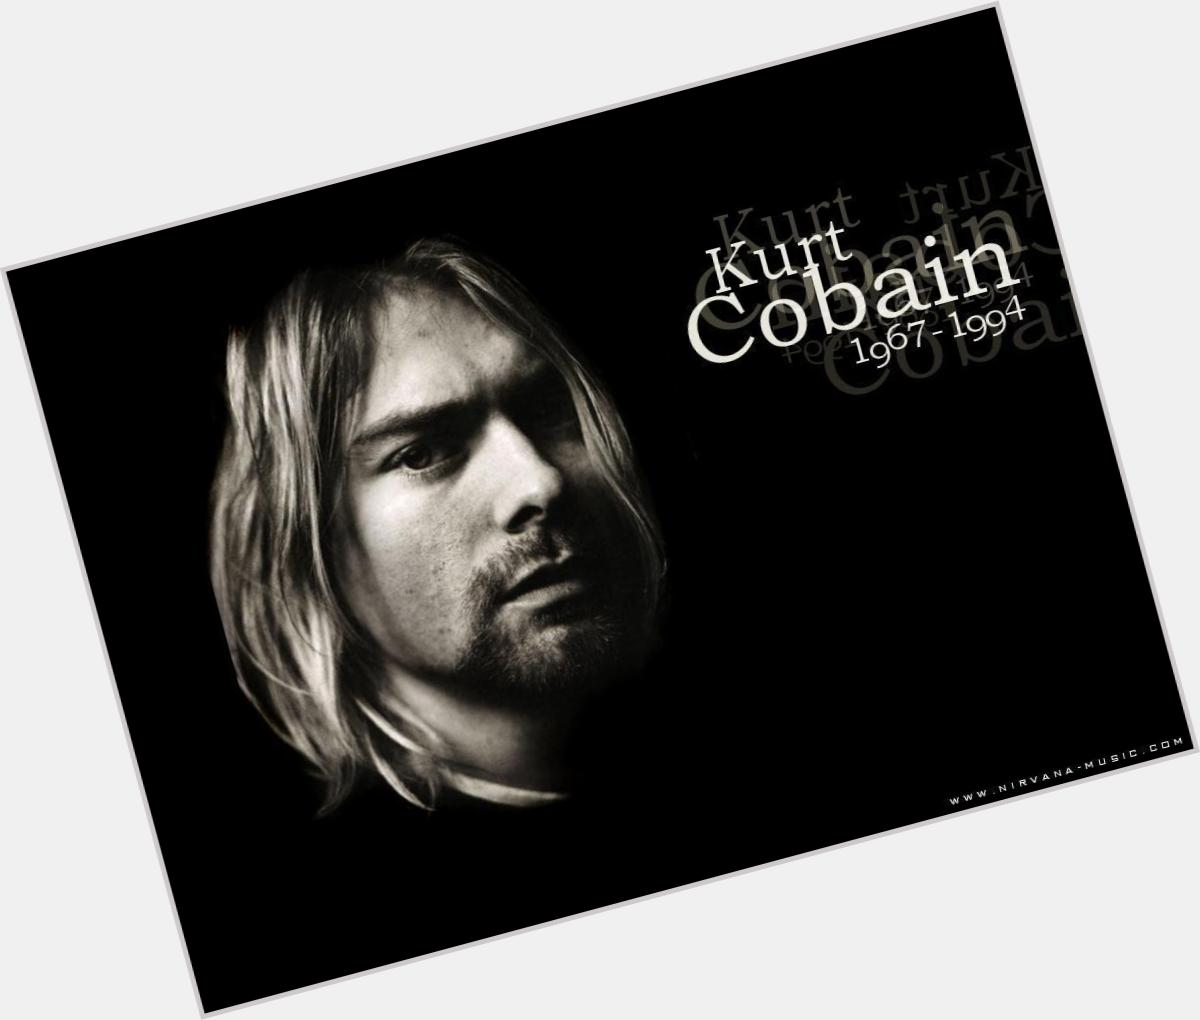 Kurt Cobain birthday 2015